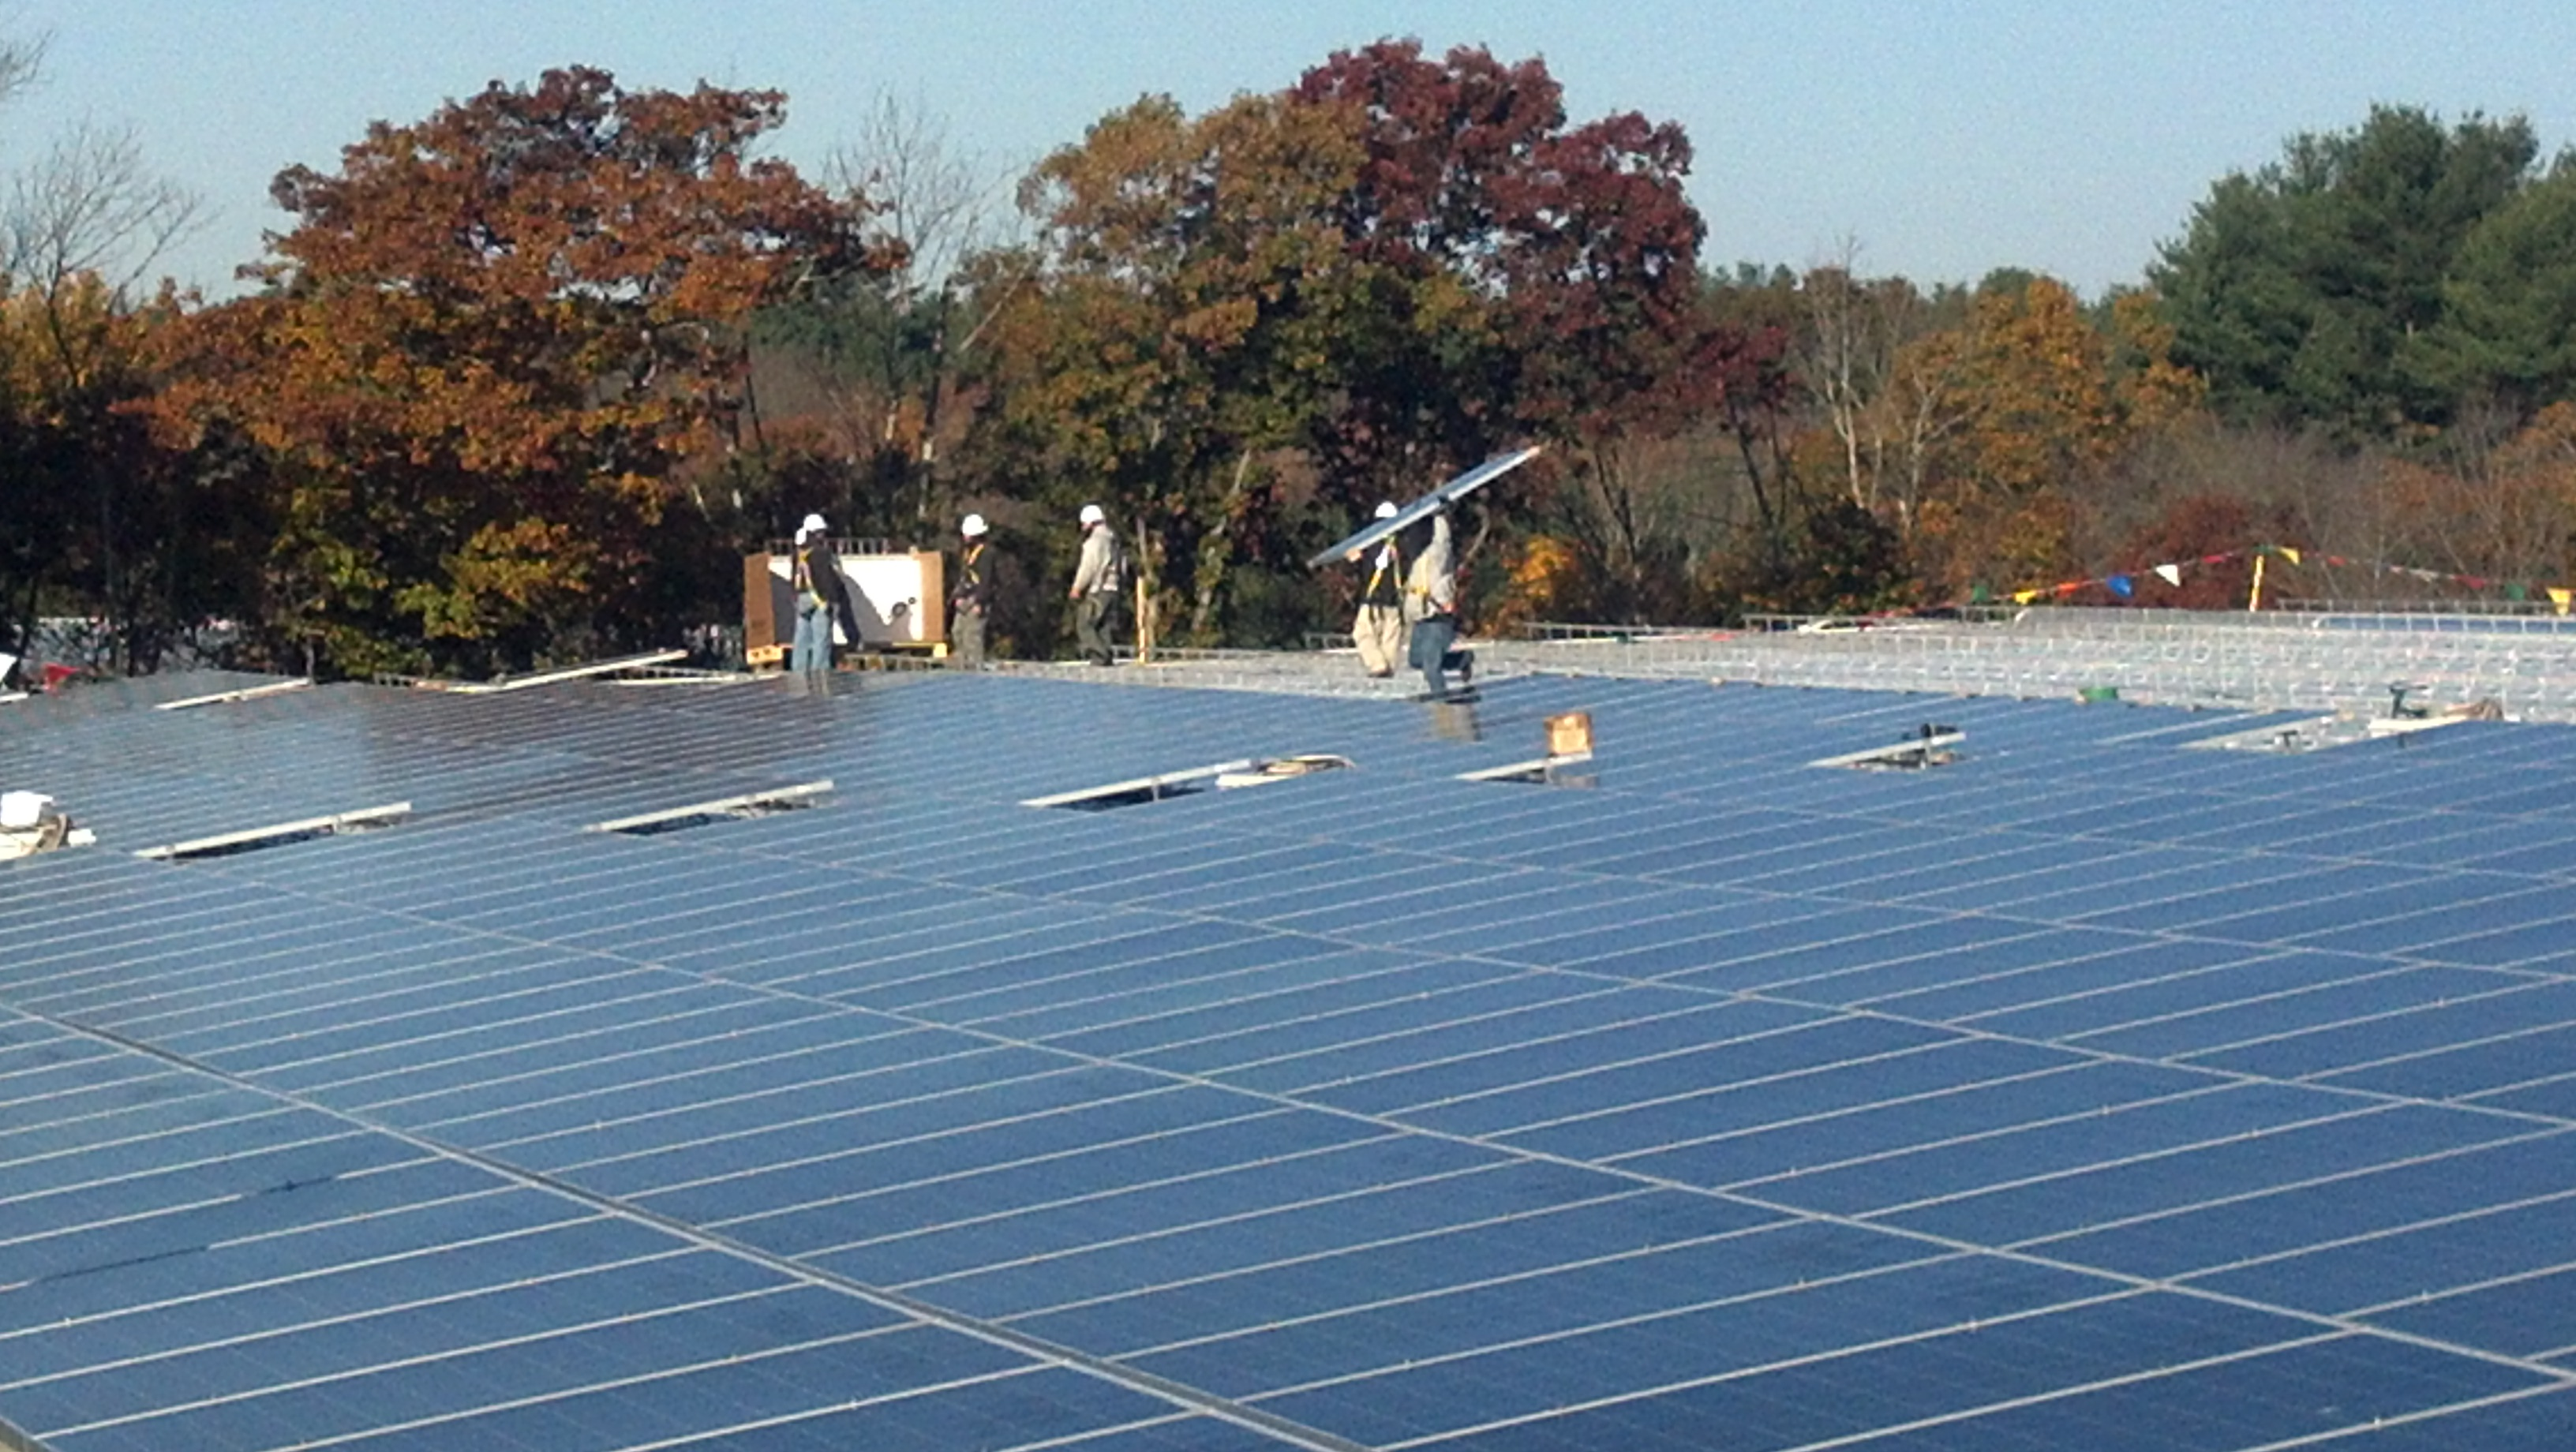 Beaumont Solar in-house staff designed and implemented this 389.40kW solar system